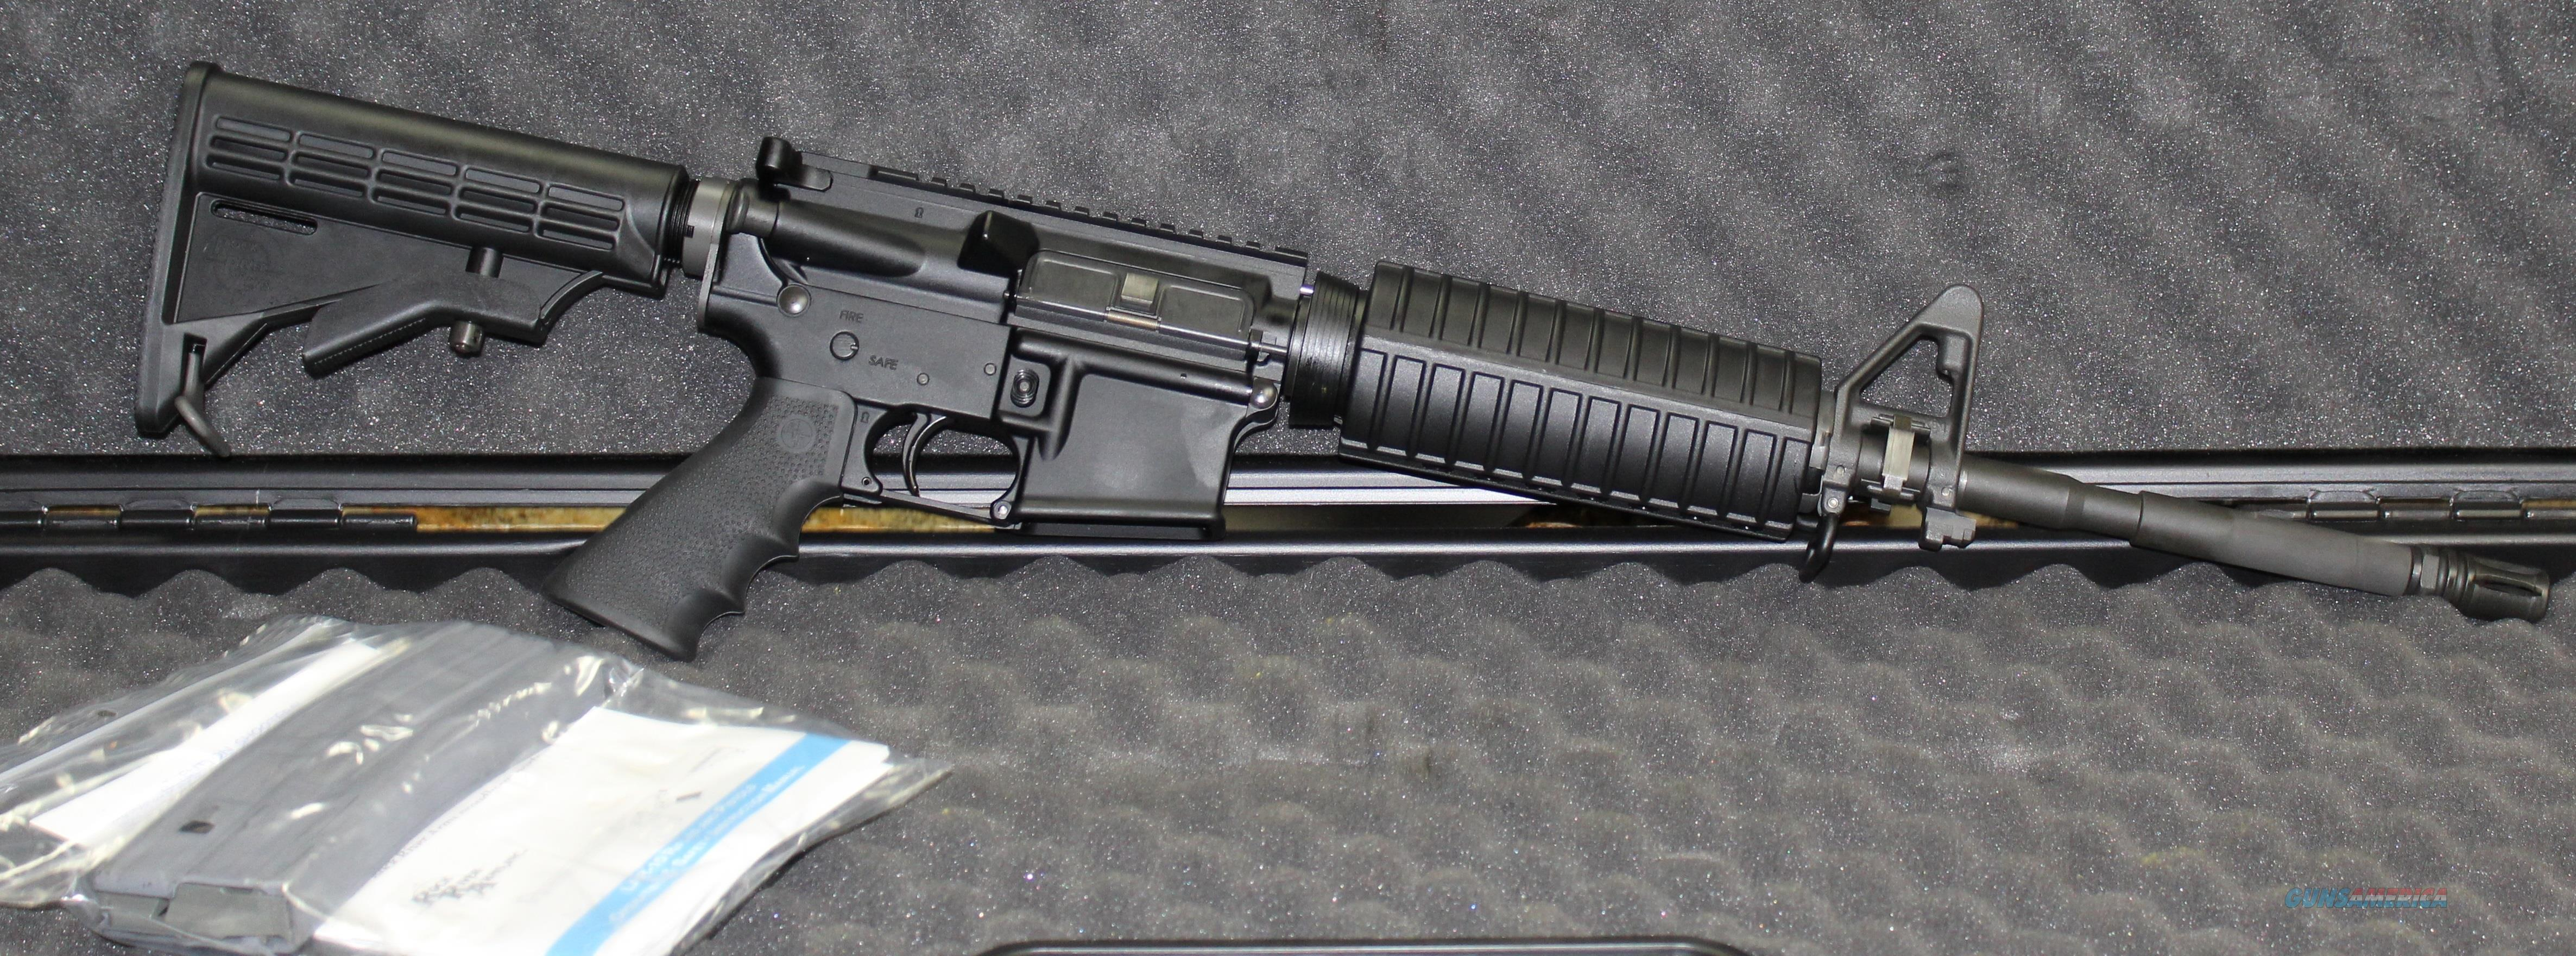 "ROCK RIVER TACTICAL ENTRY LAR-15 #AR1252 223 16"" W/30 ROUND MAG NEW IN BOX  Guns > Rifles > Rock River Arms Rifles"